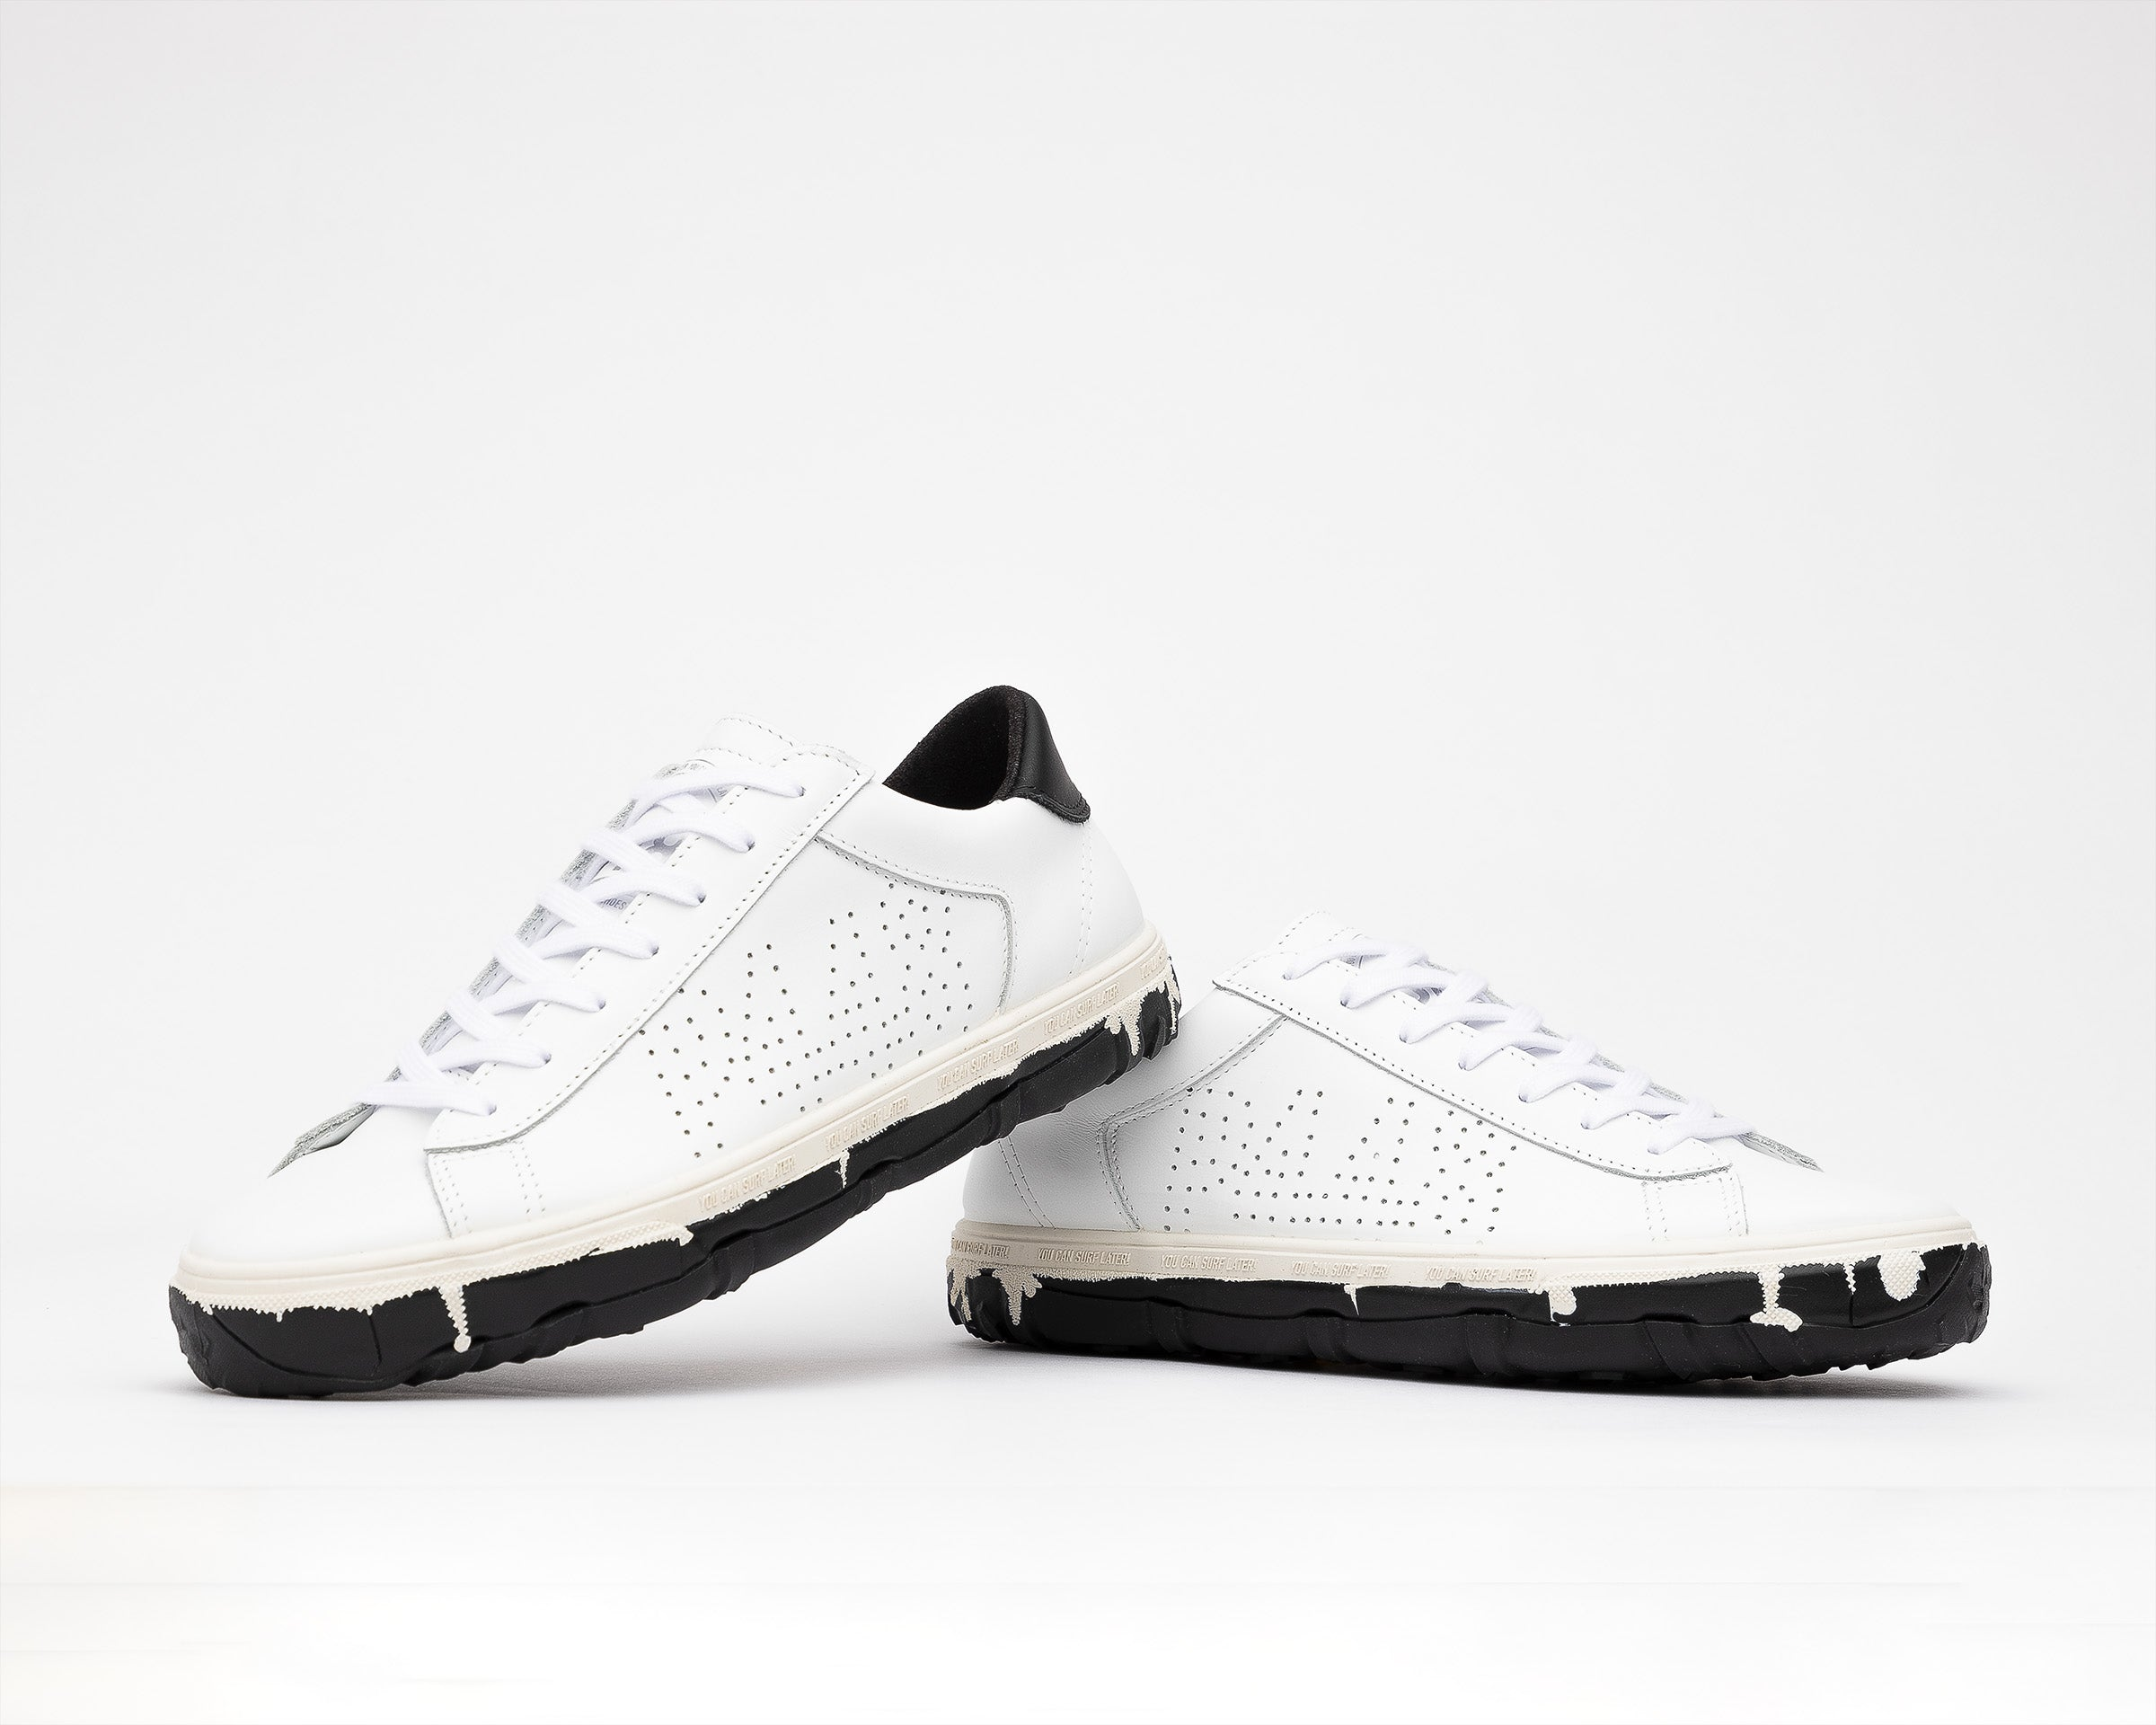 Y.C.S.L. Vibram Low-Top Sneaker in White/Black - Detail